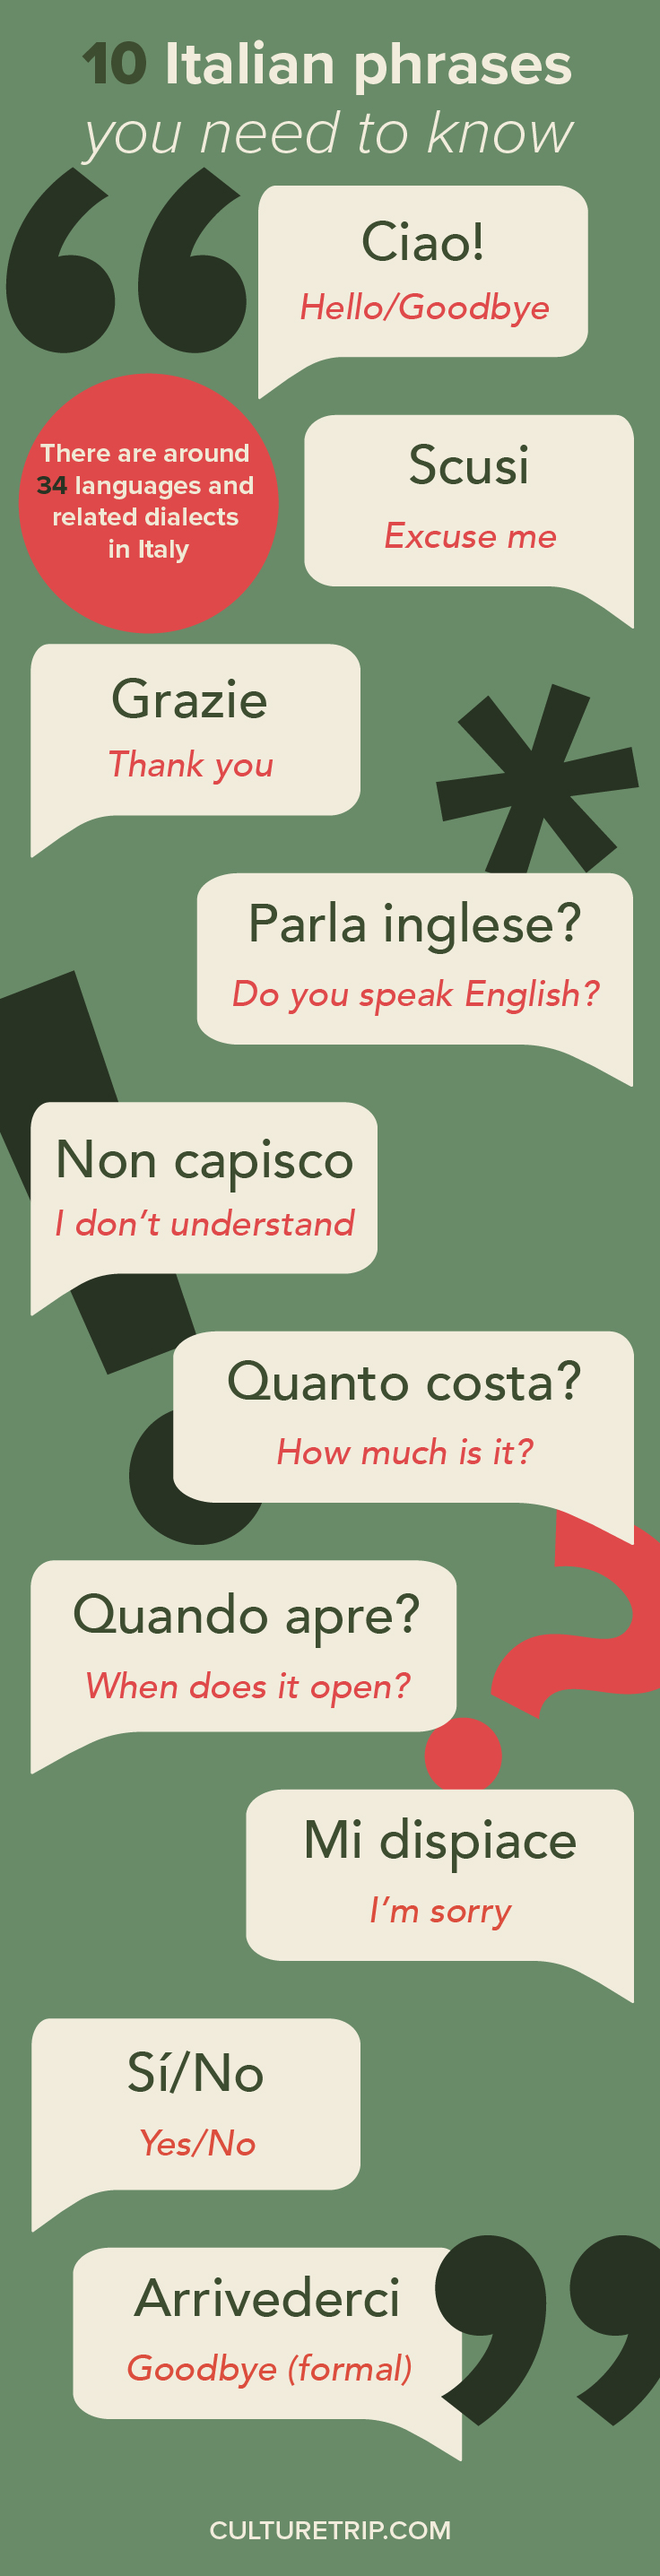 10 Useful Italian Words You Need To Know Before Traveling To Italy Infographic